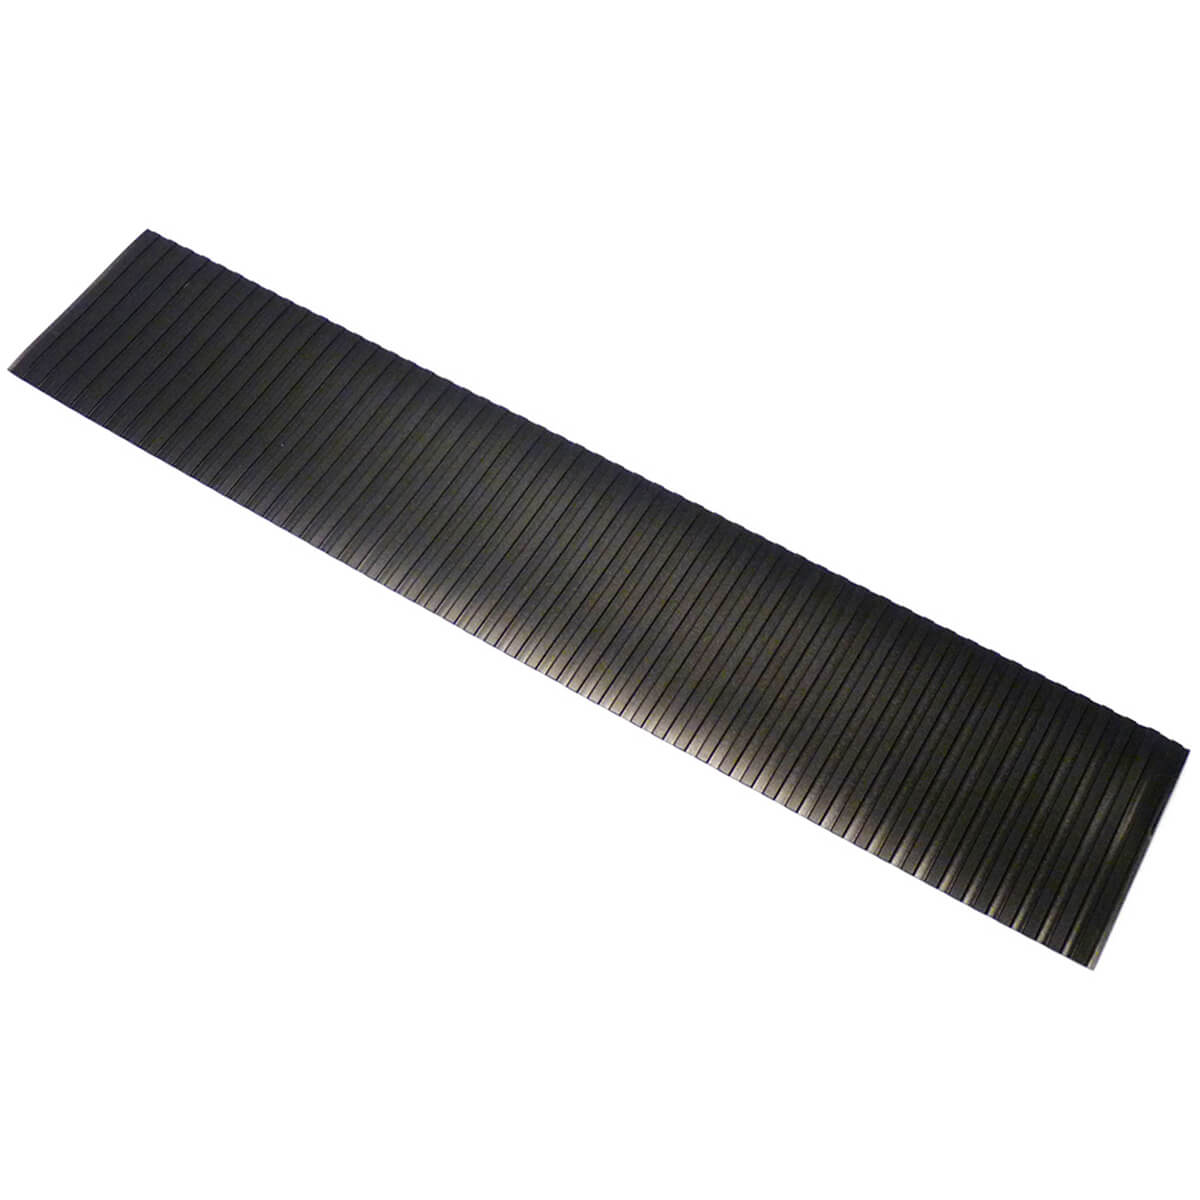 Rubber Mat For A Ramp Ramps Cagetopia